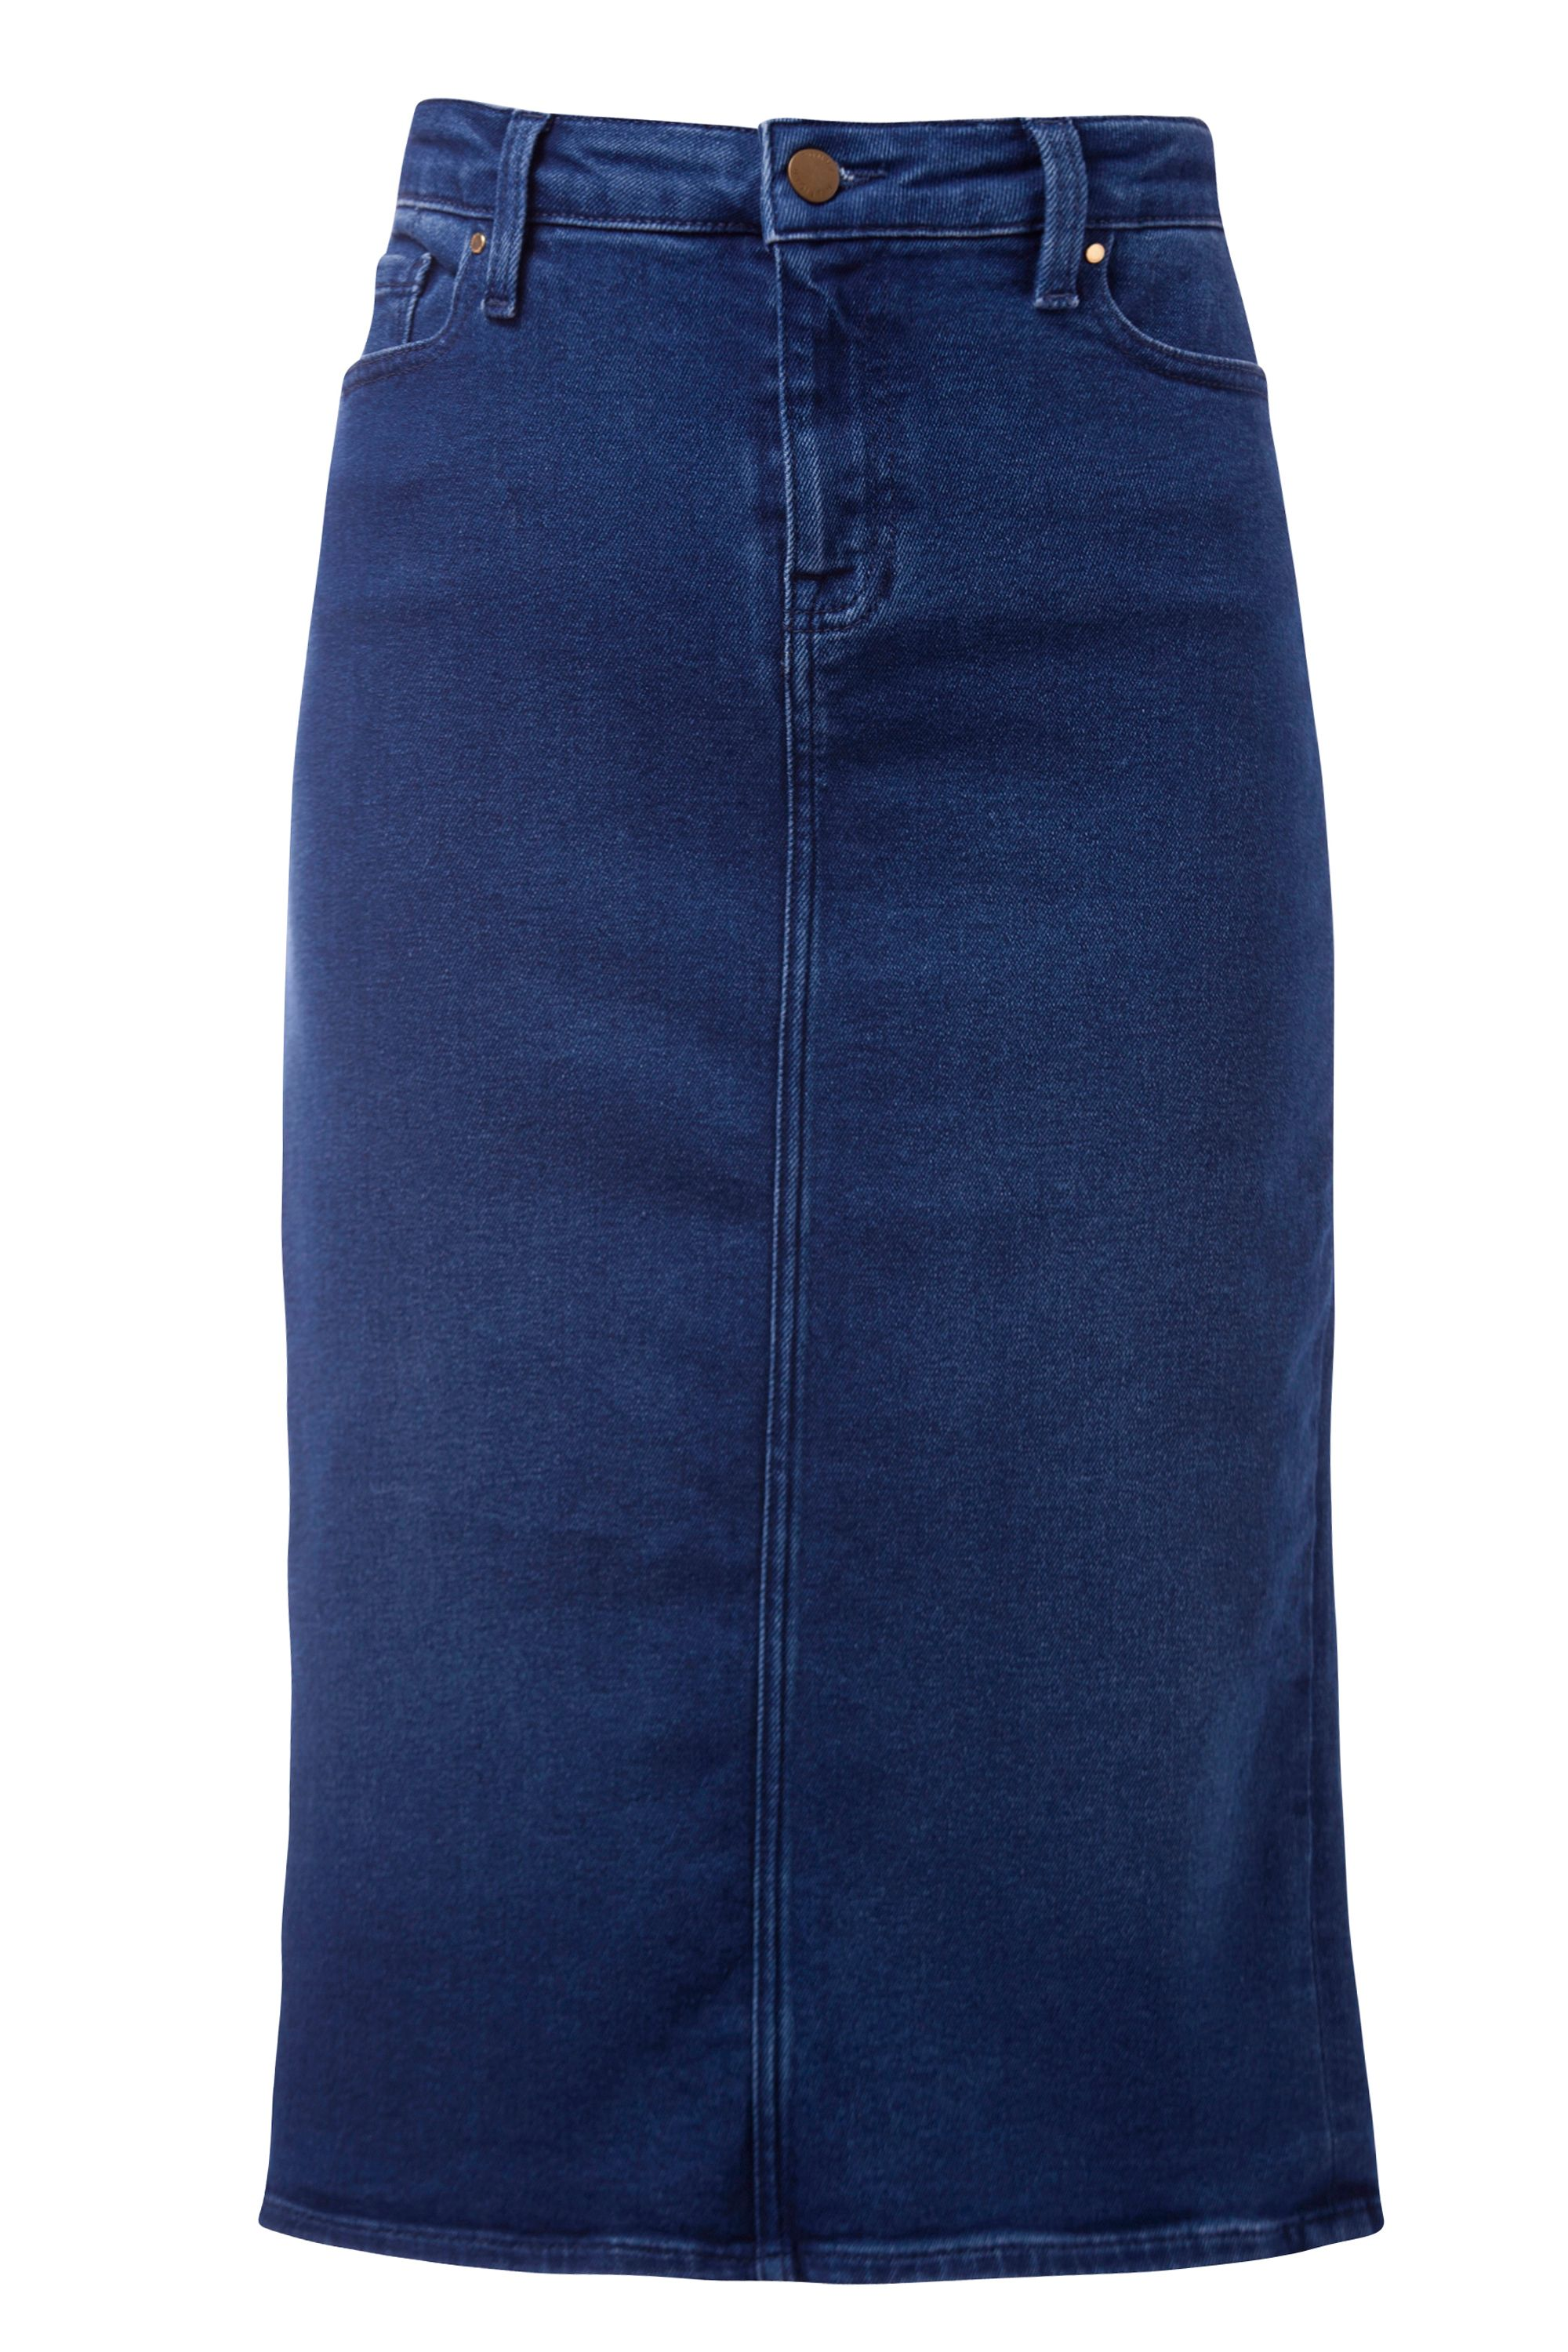 Tommy Hilfiger Rome Long Skirt Cynthia, Blue